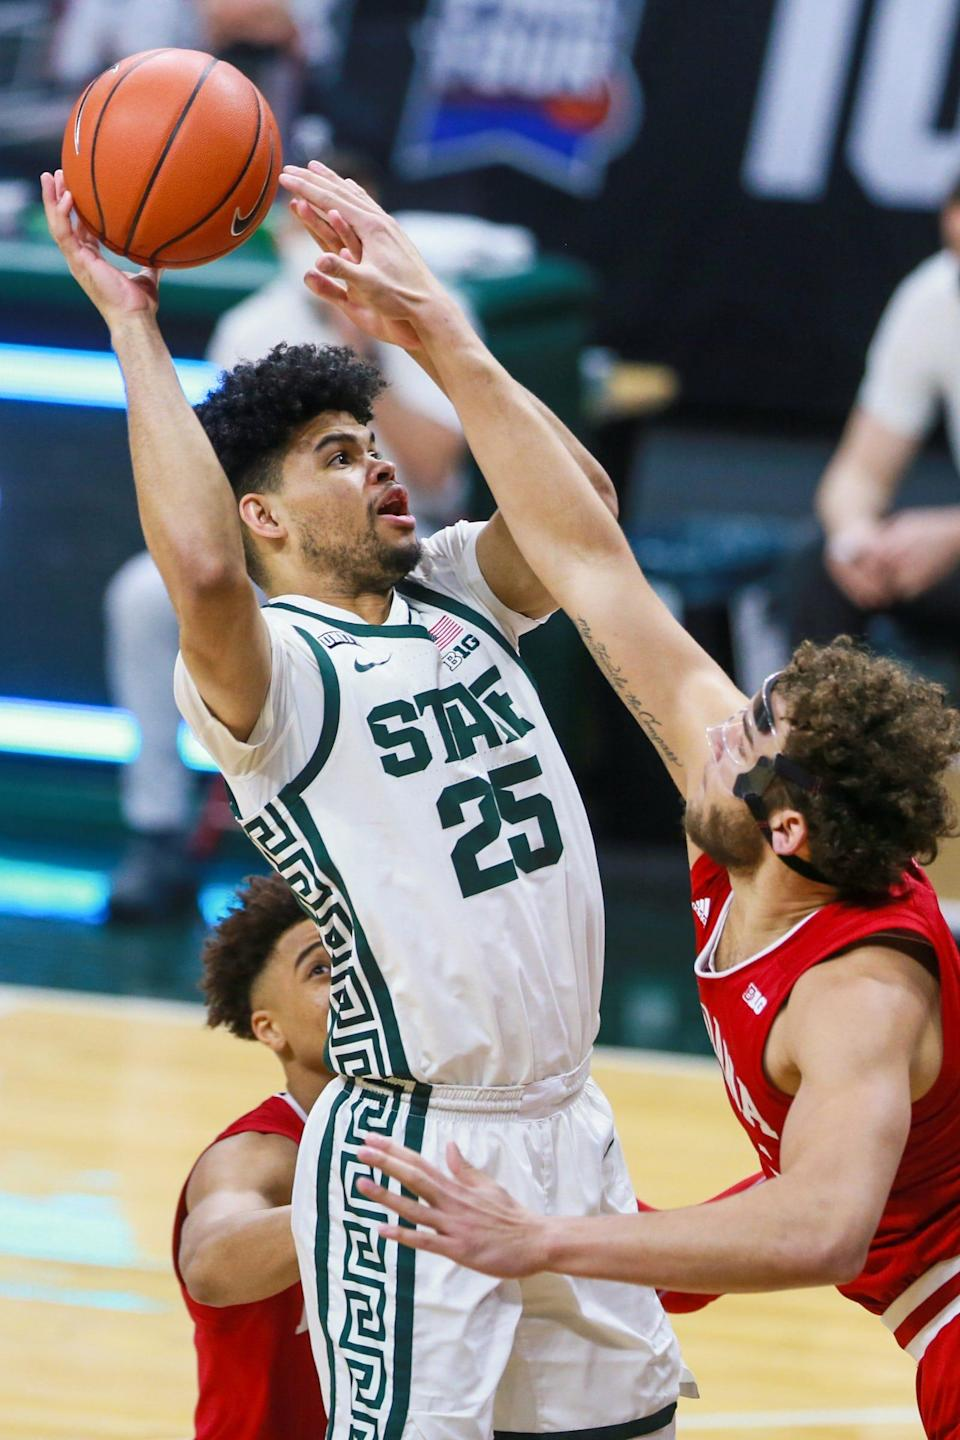 Michigan State forward Malik Hall (25) attempts a layup in the first half against Indiana on Tuesday, March 2, 2021, in East Lansing.